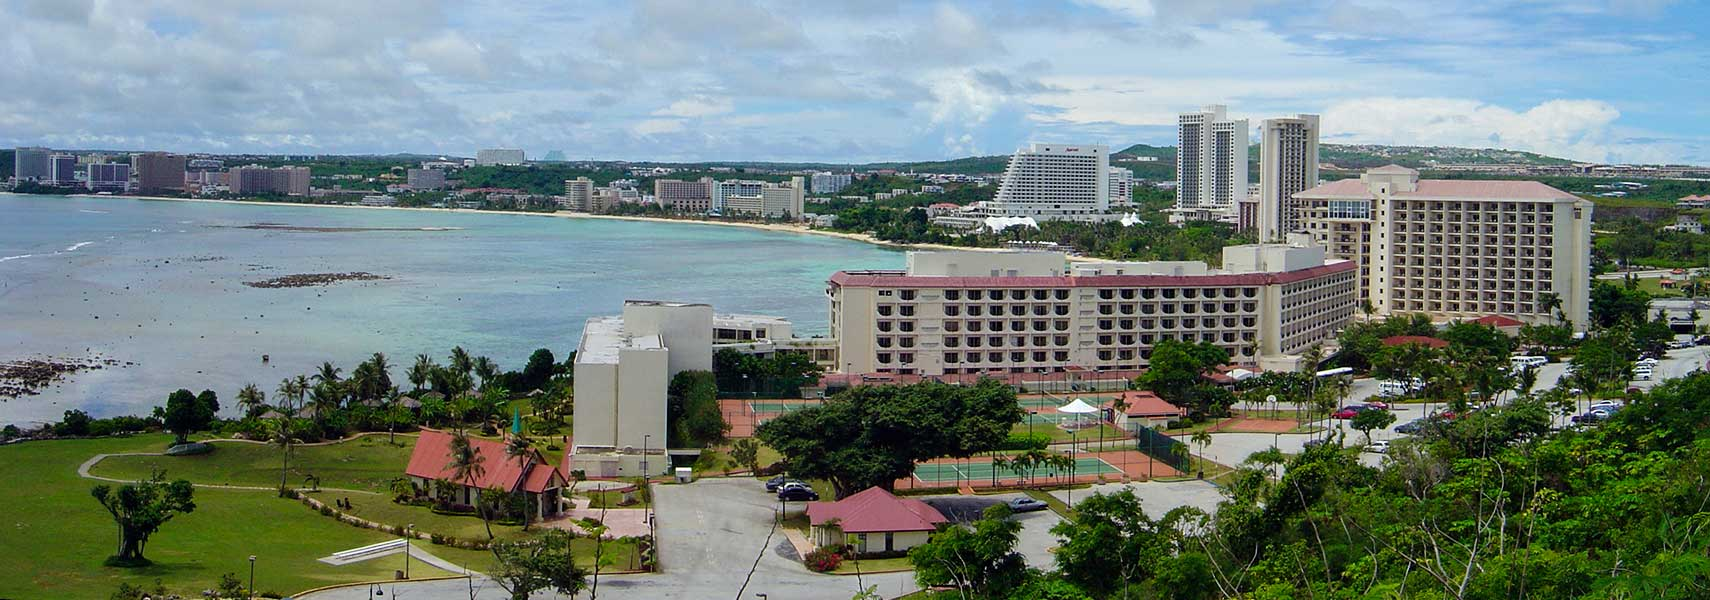 Google Map of Guam - Nations Online Project